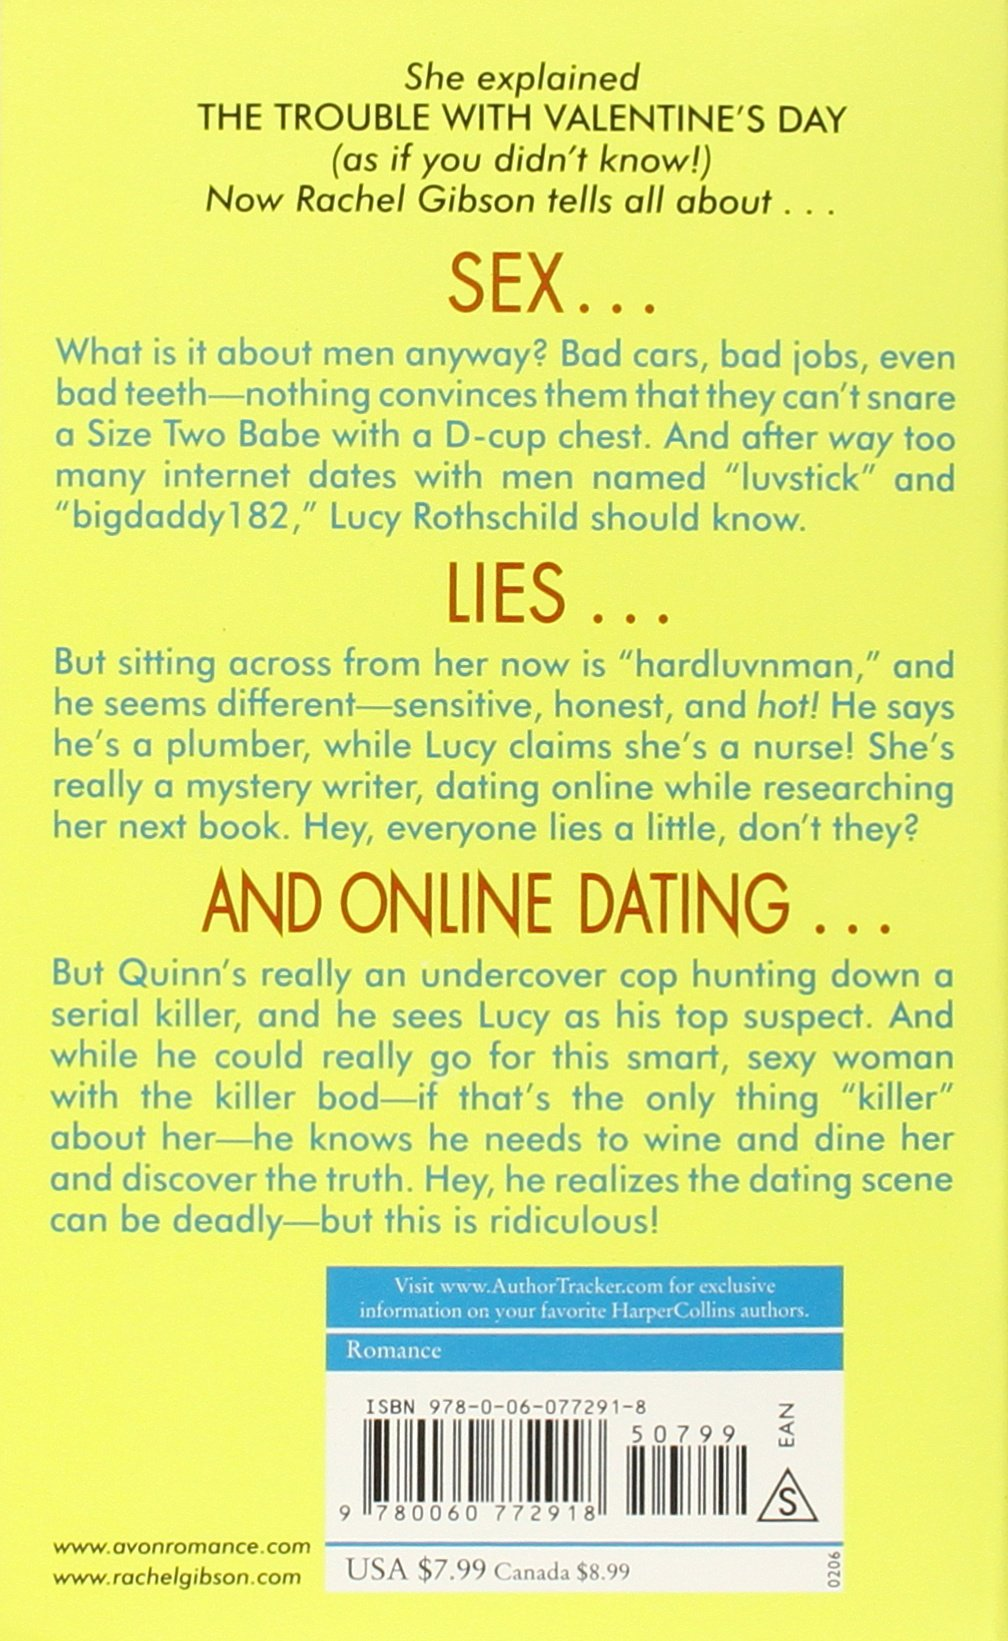 dating can be deadly healthy vs unhealthy dating relationships